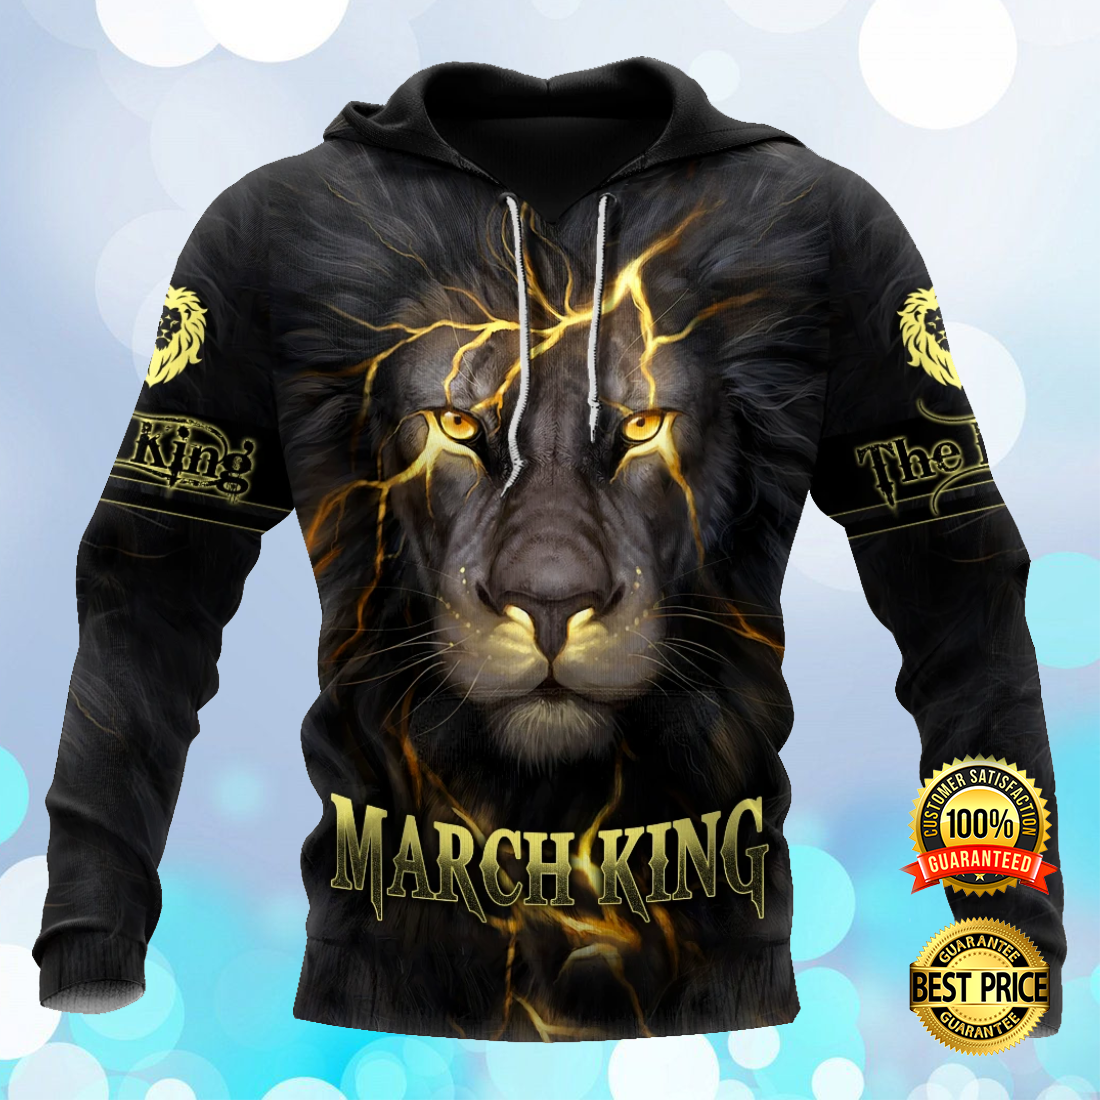 MARCH LION KING ALL OVER PRINTED 3D HOODIE 5